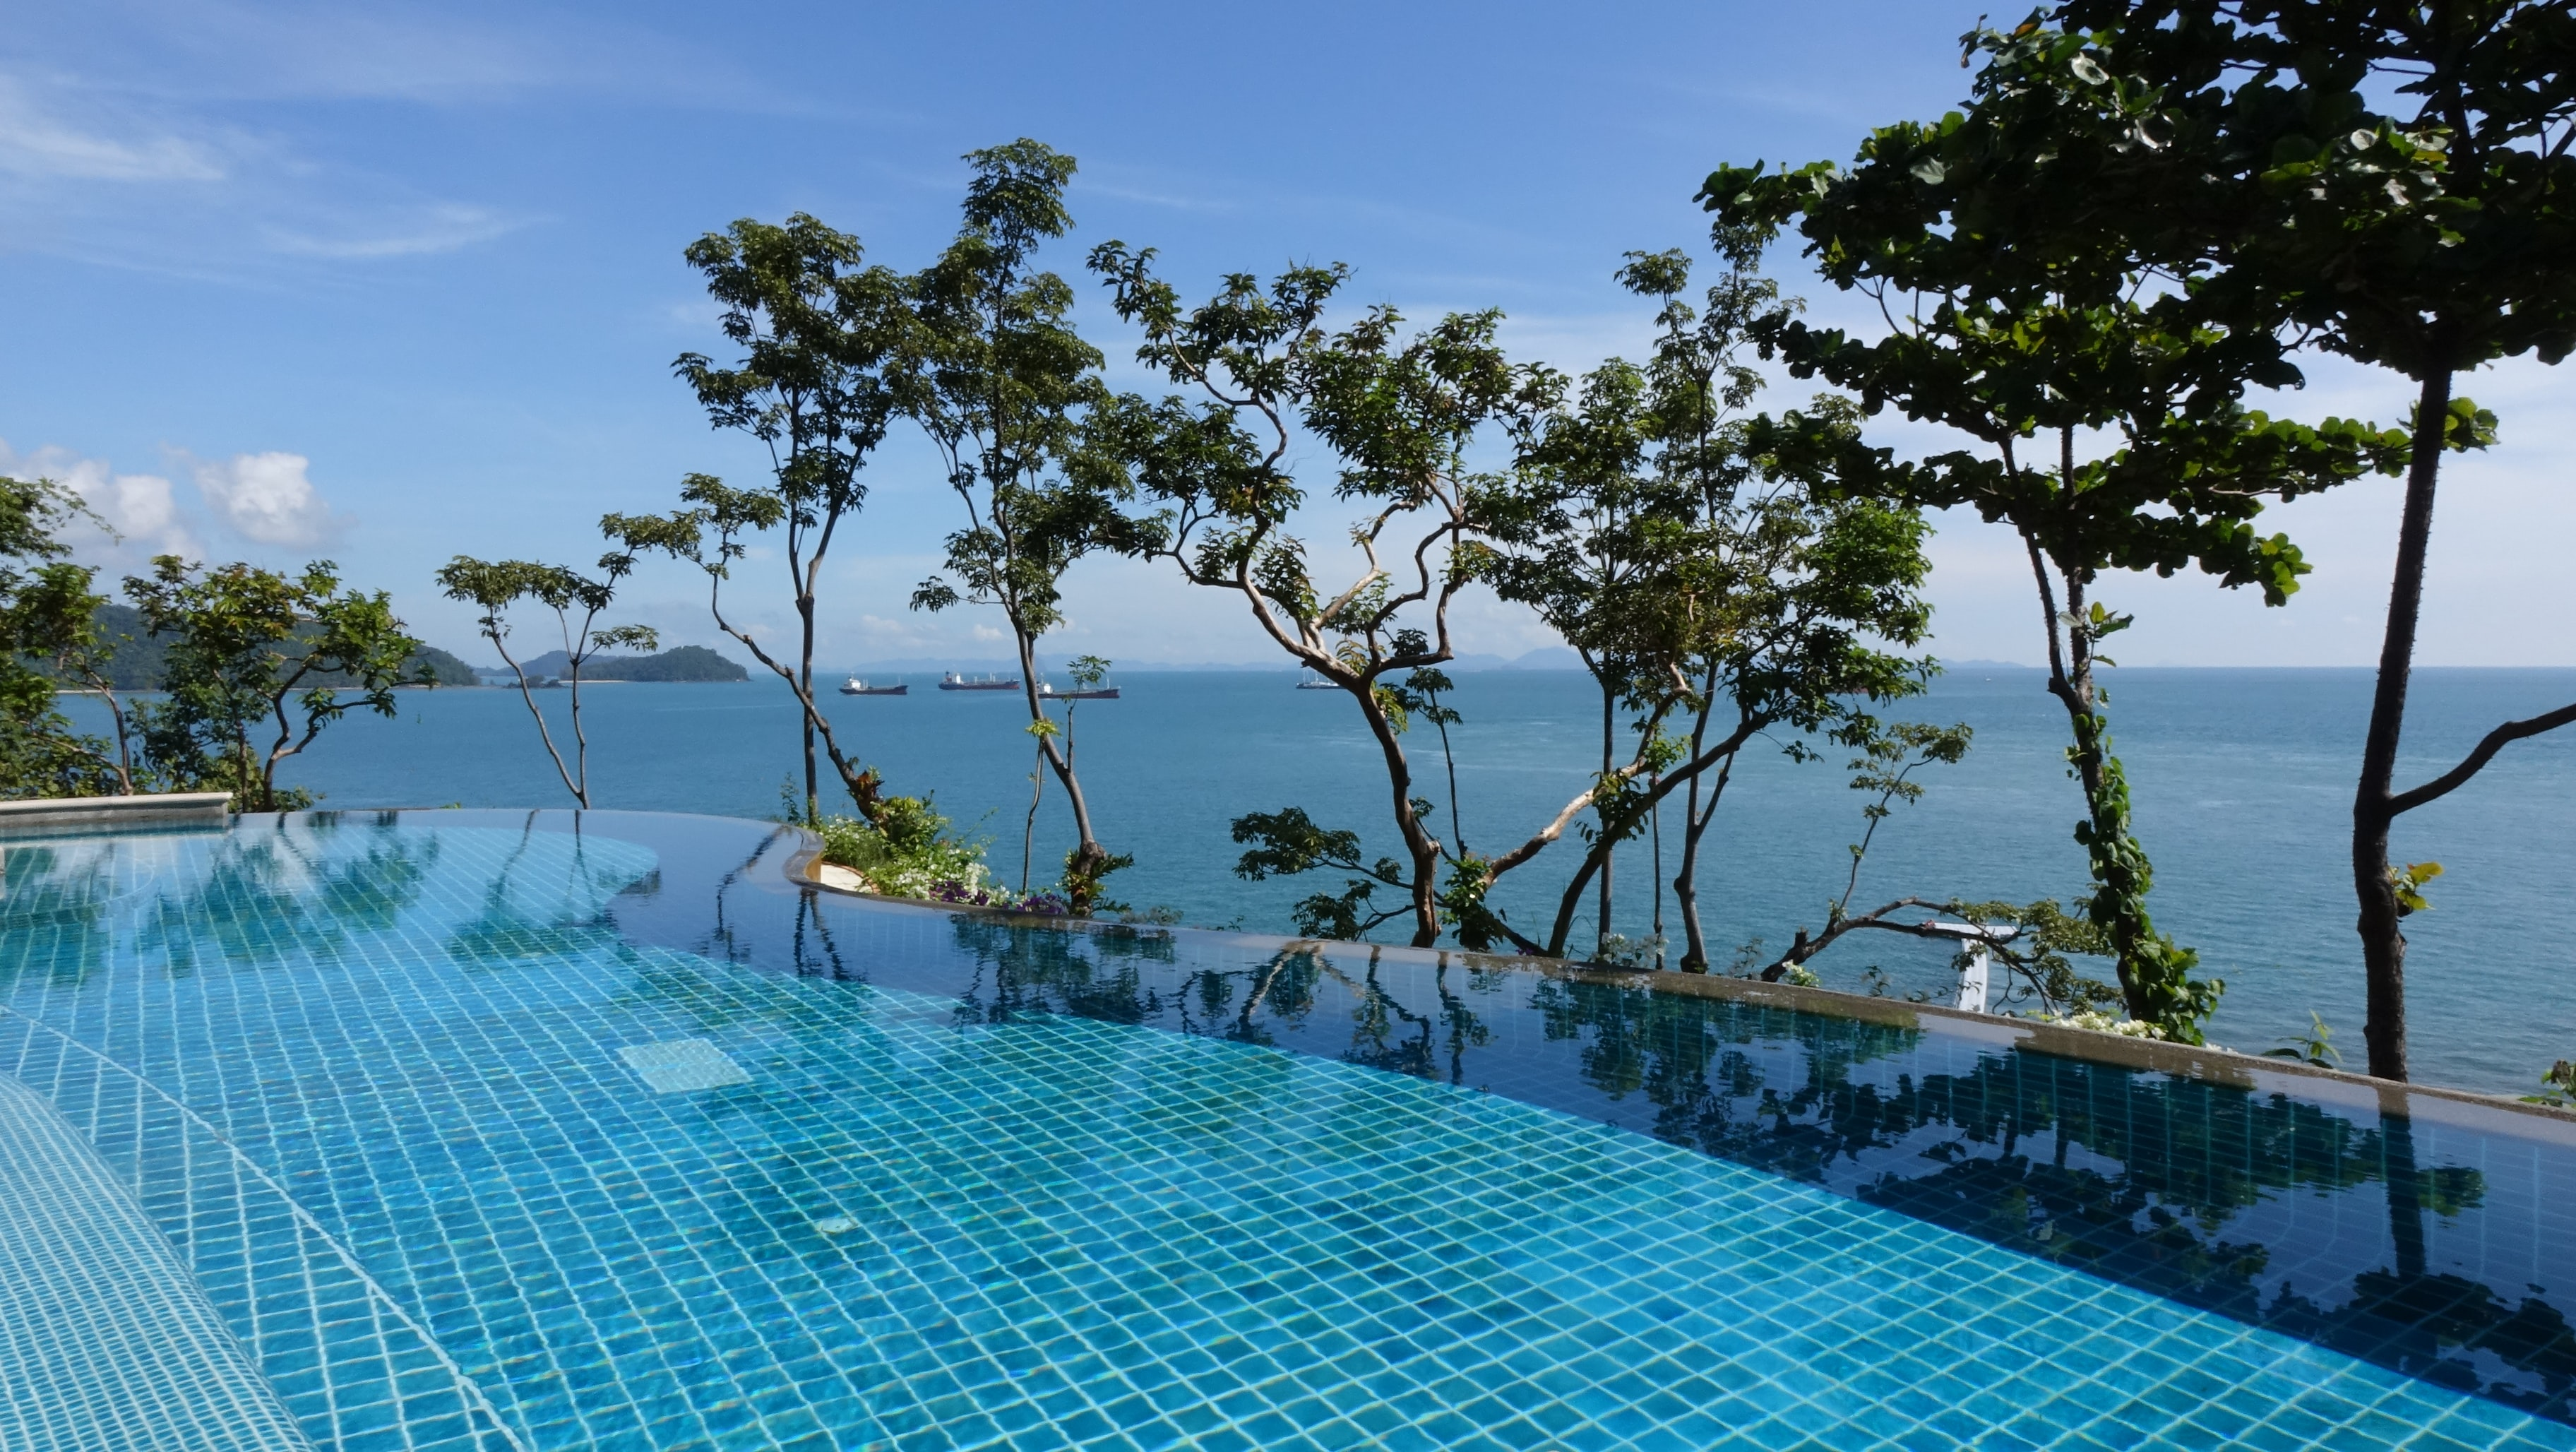 infinity pool with background view of open sea at daytime